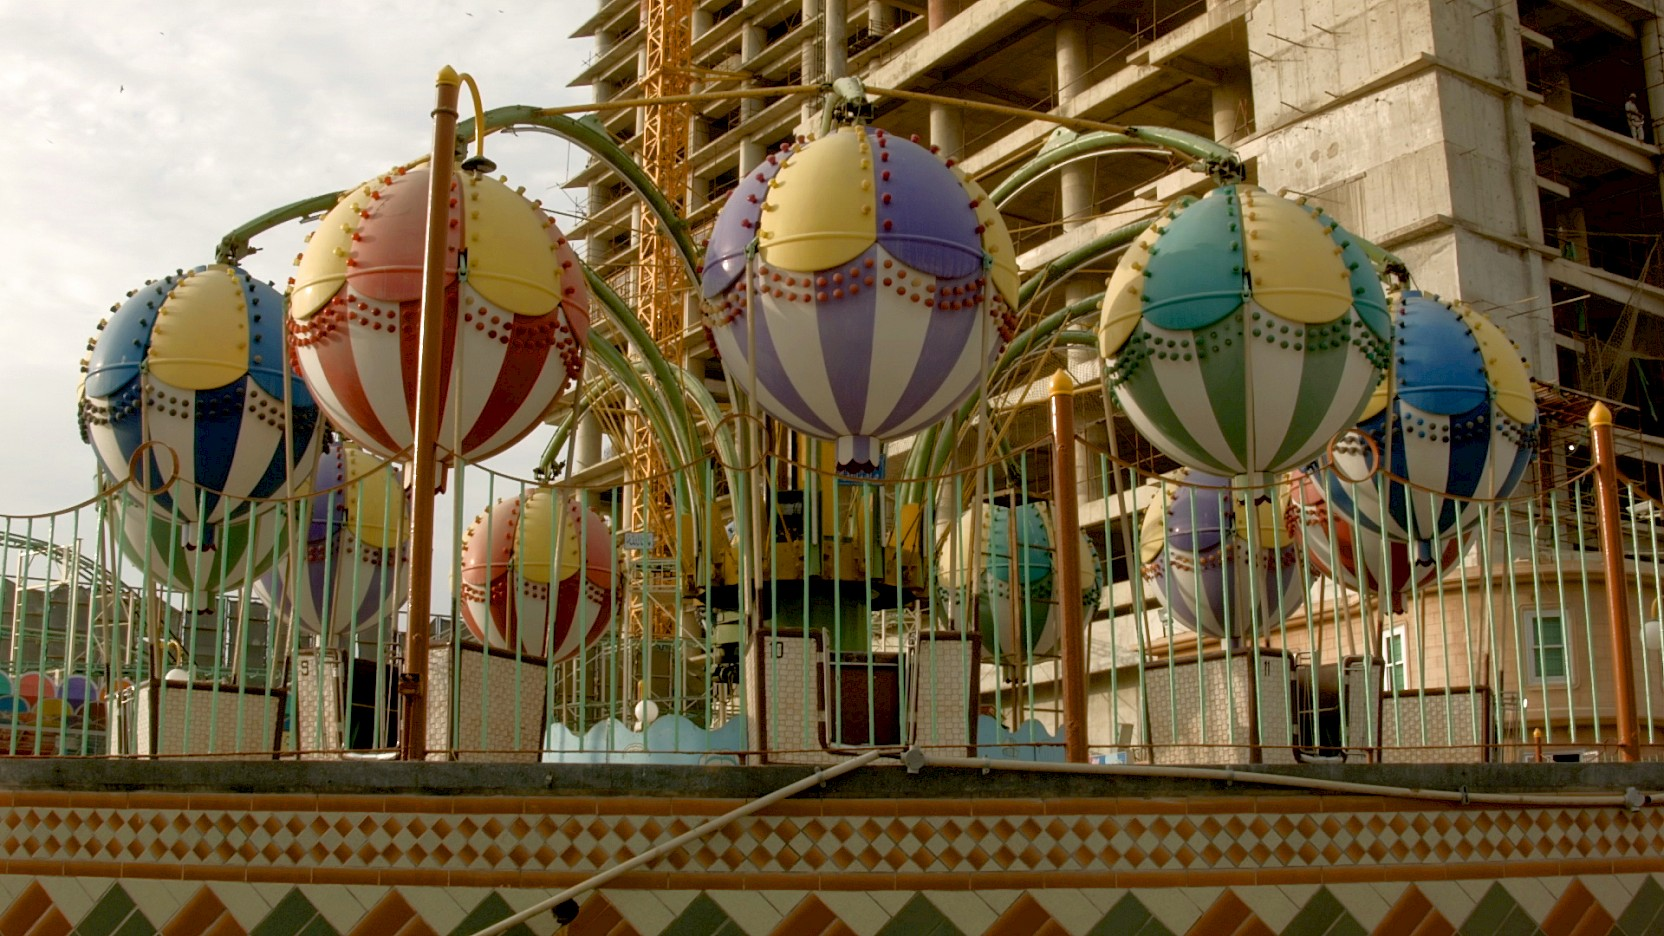 Bani Abidi, Funland, 2016, film still, photo: Courtesy of the artist